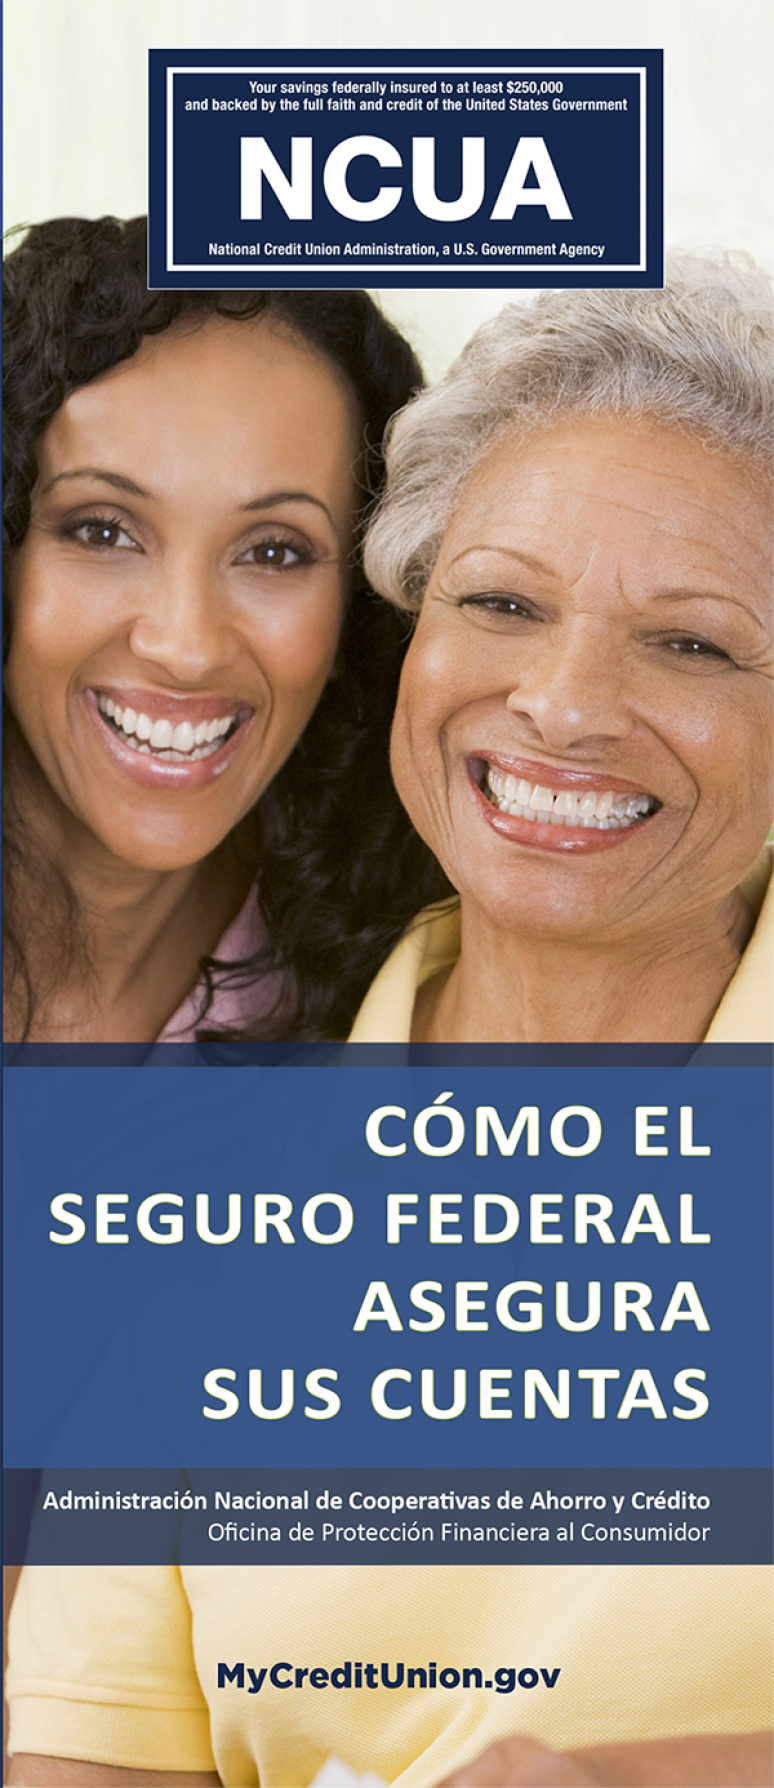 How Your Accounts Are Federally Insured (Spanish)